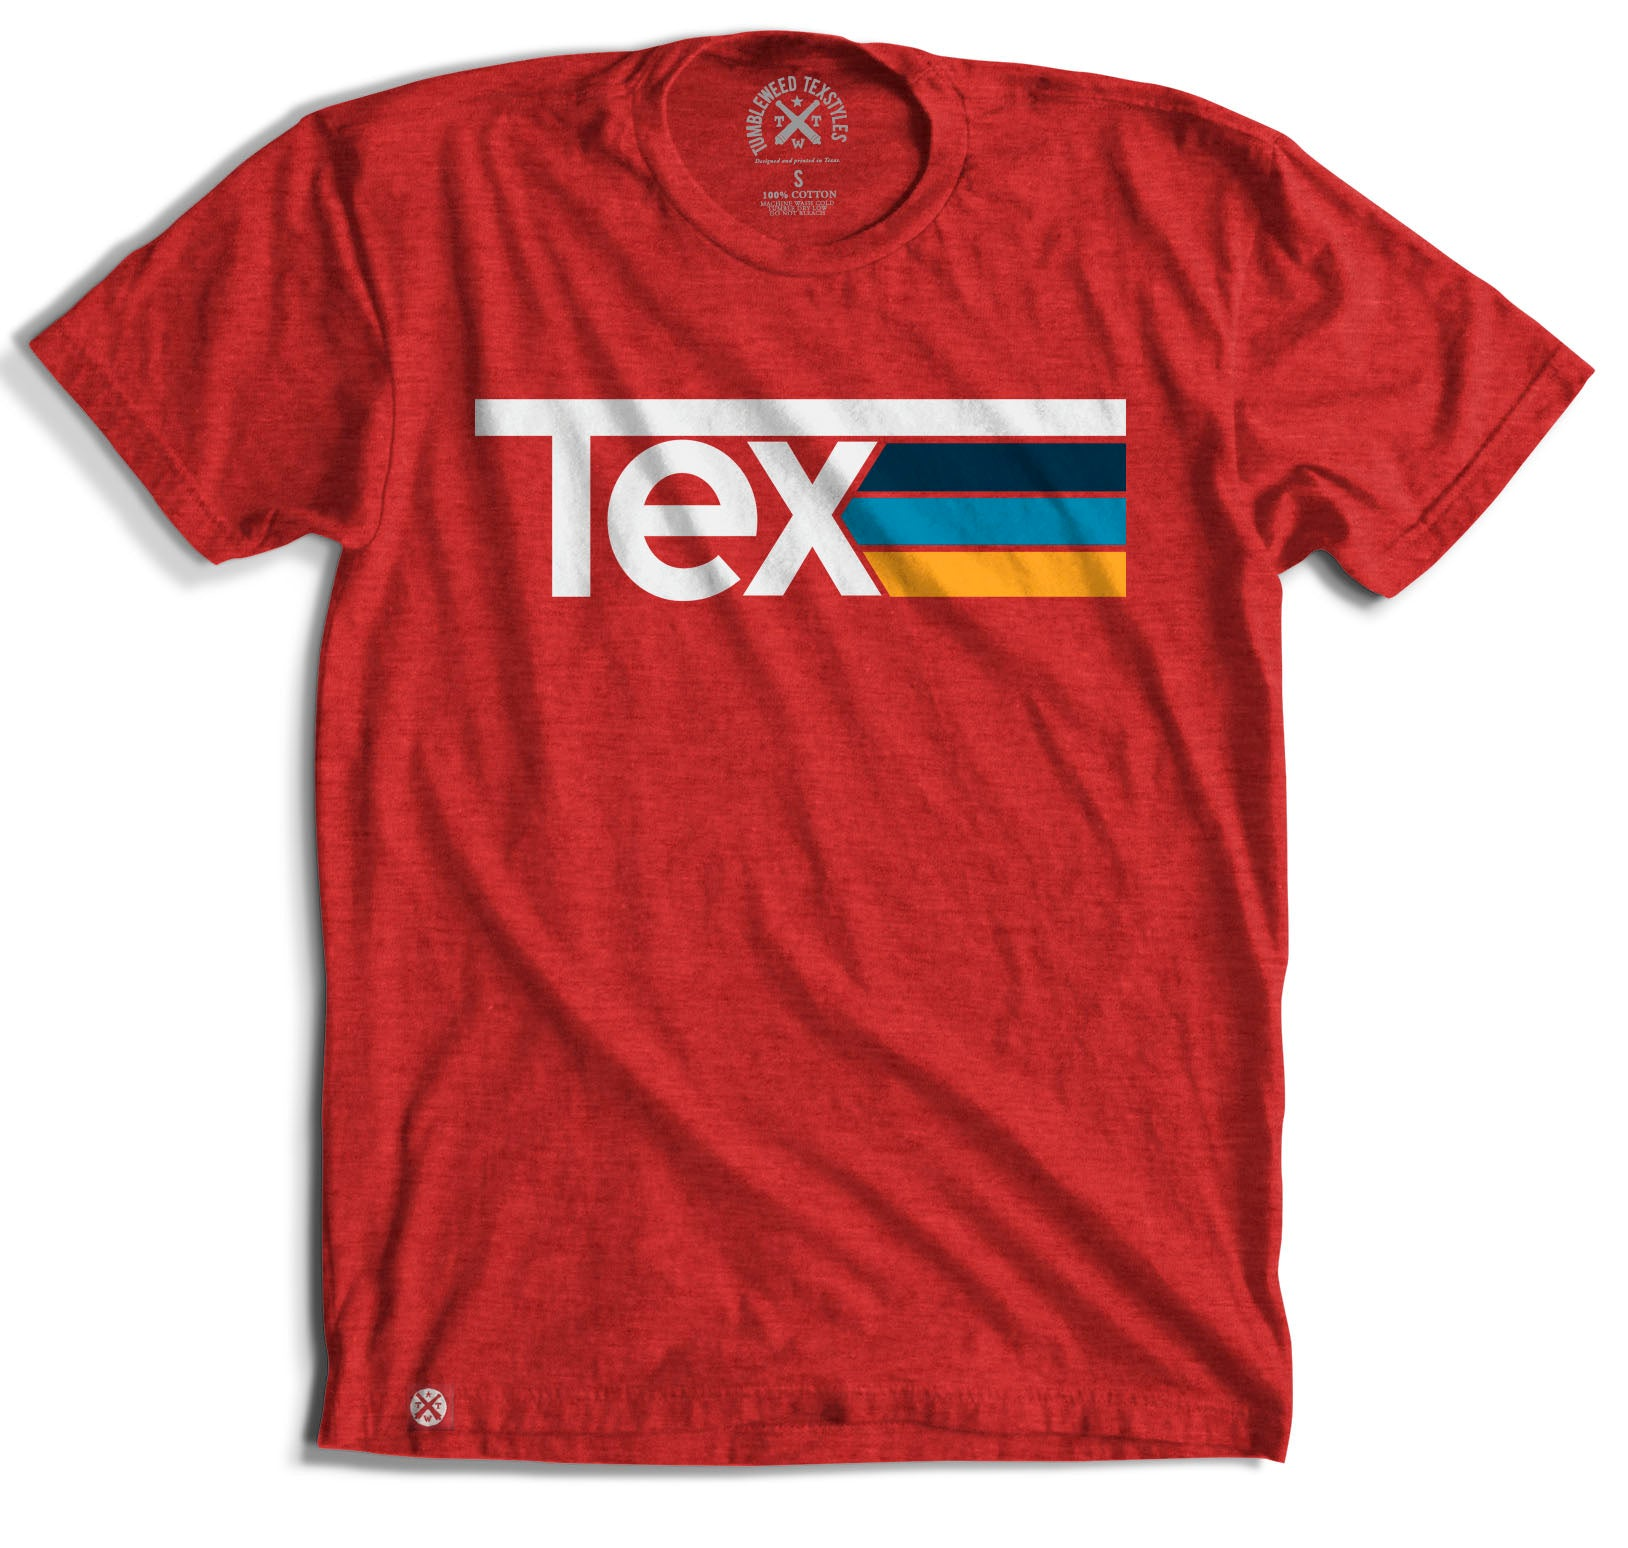 TEX Stripes T-Shirt - Tumbleweed TexStyles